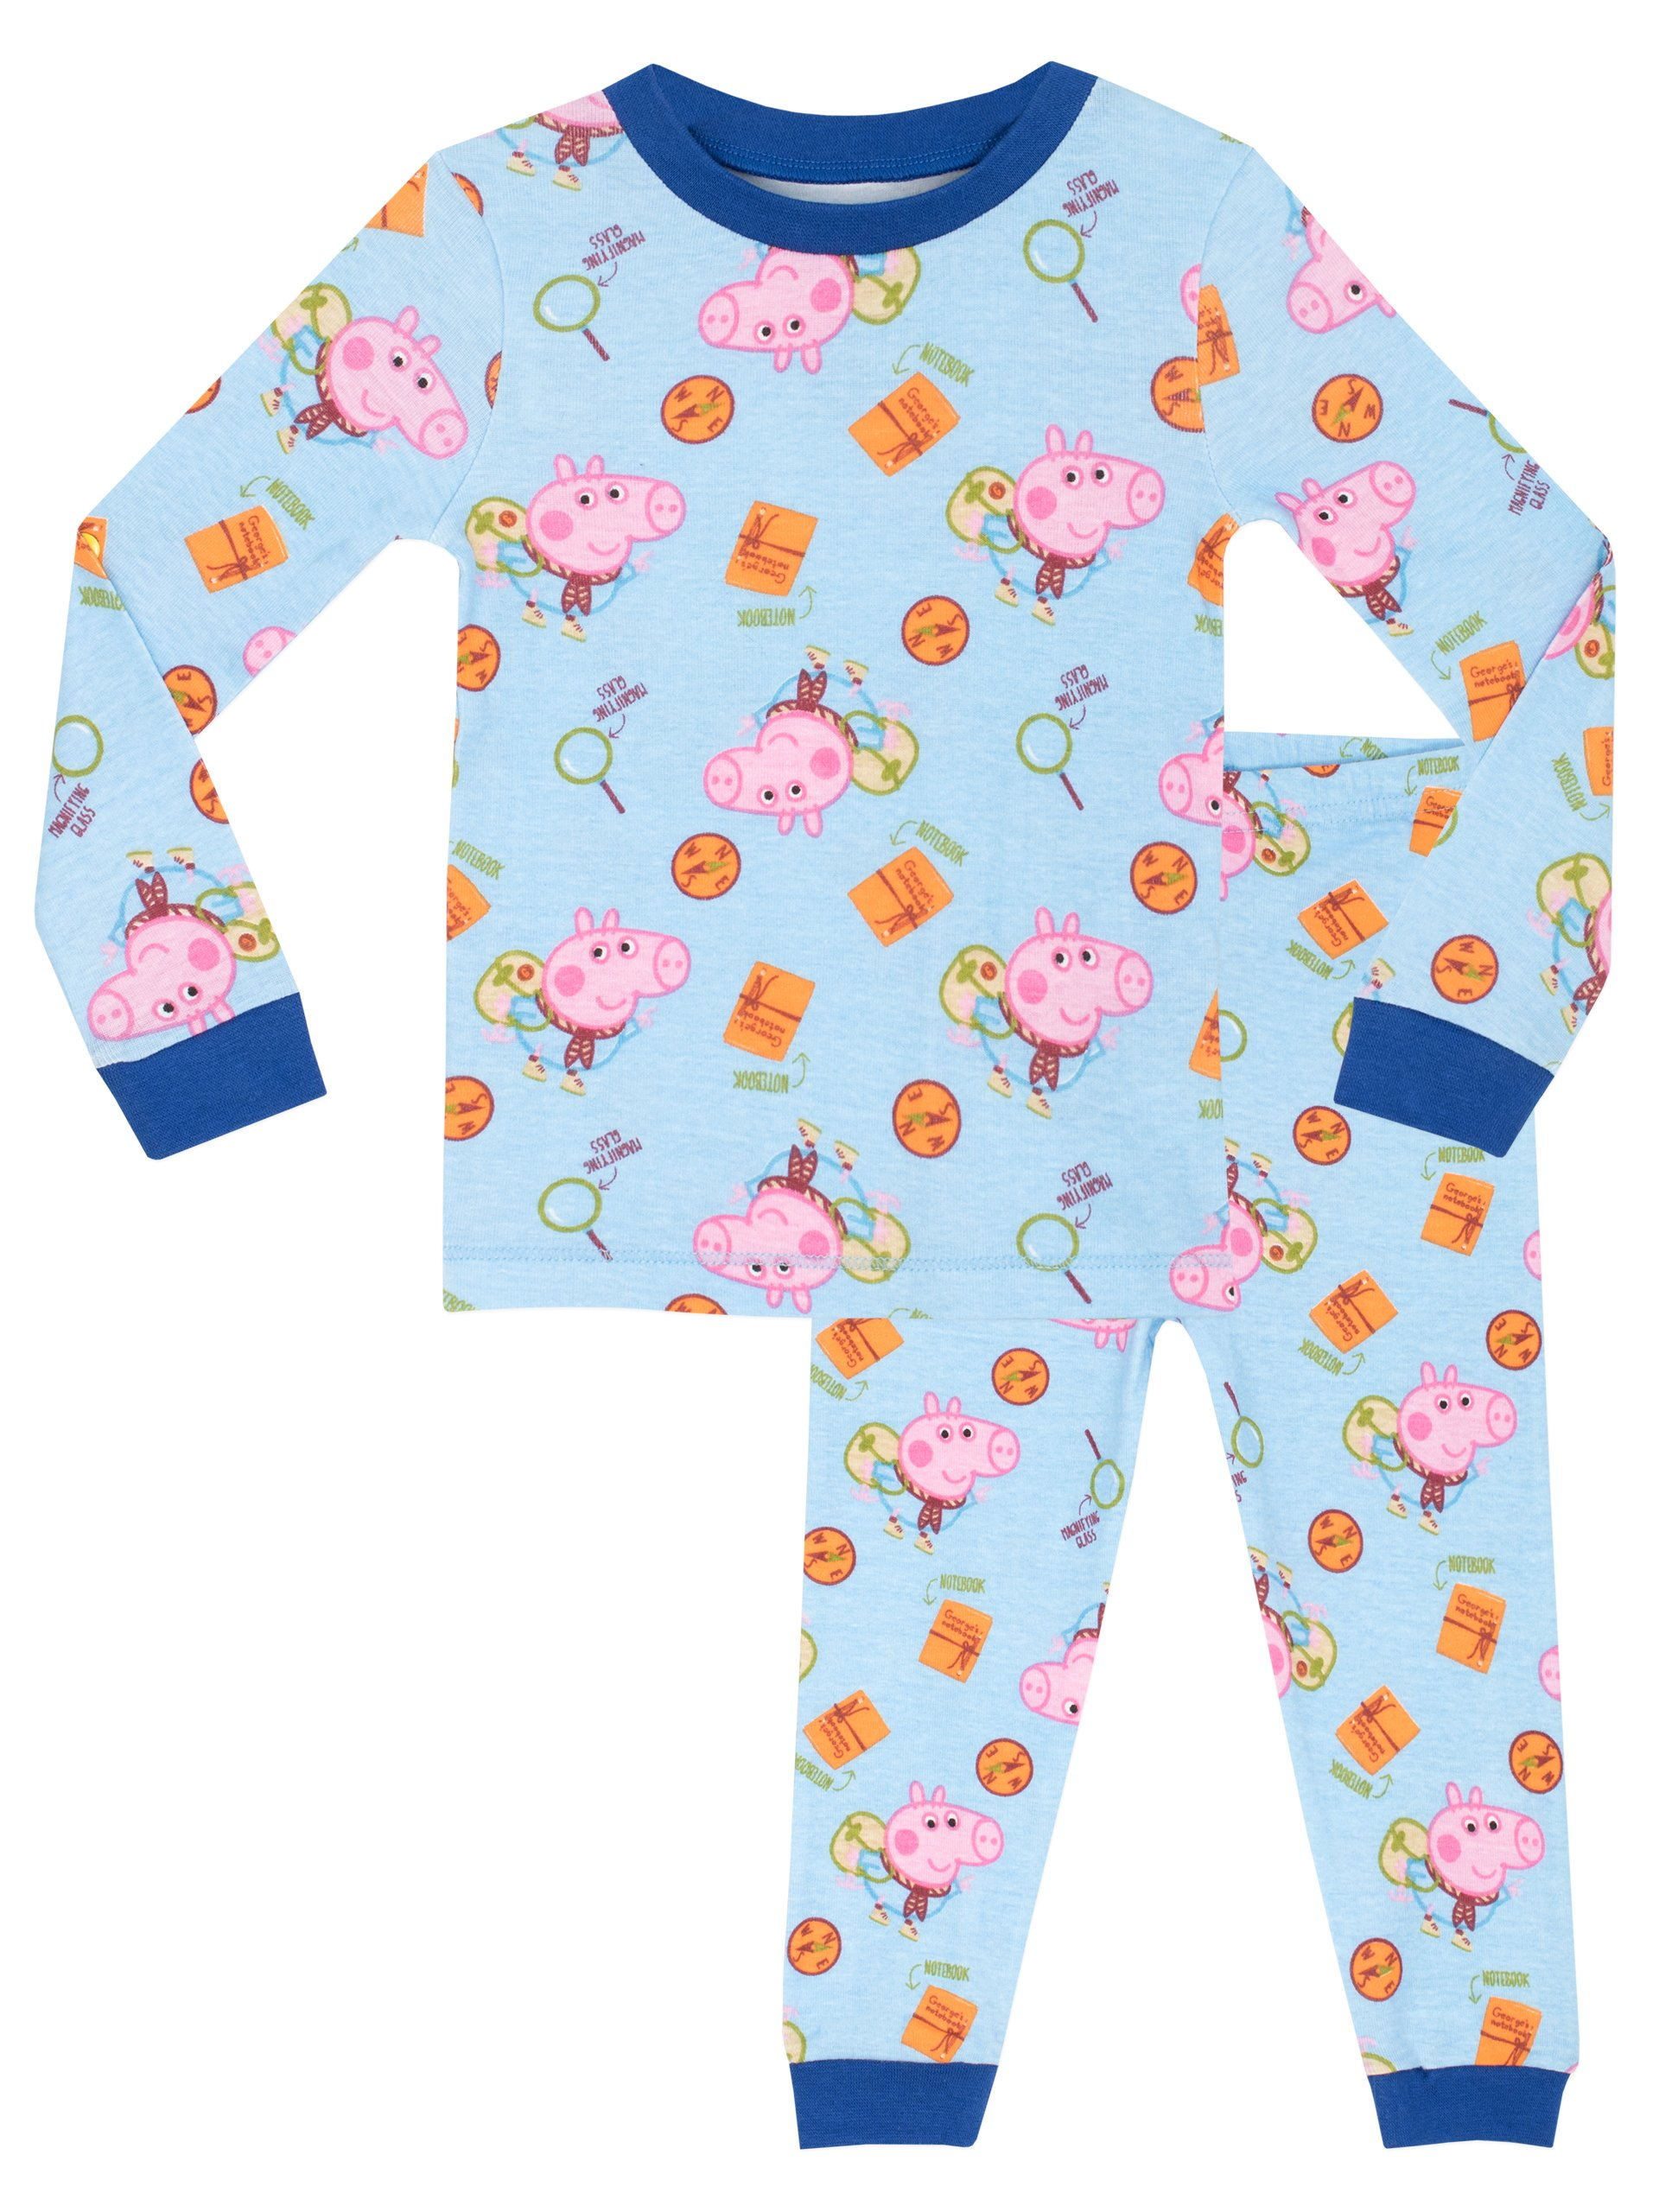 Peppa Pig Boys' George Pig Pajamas Size 6